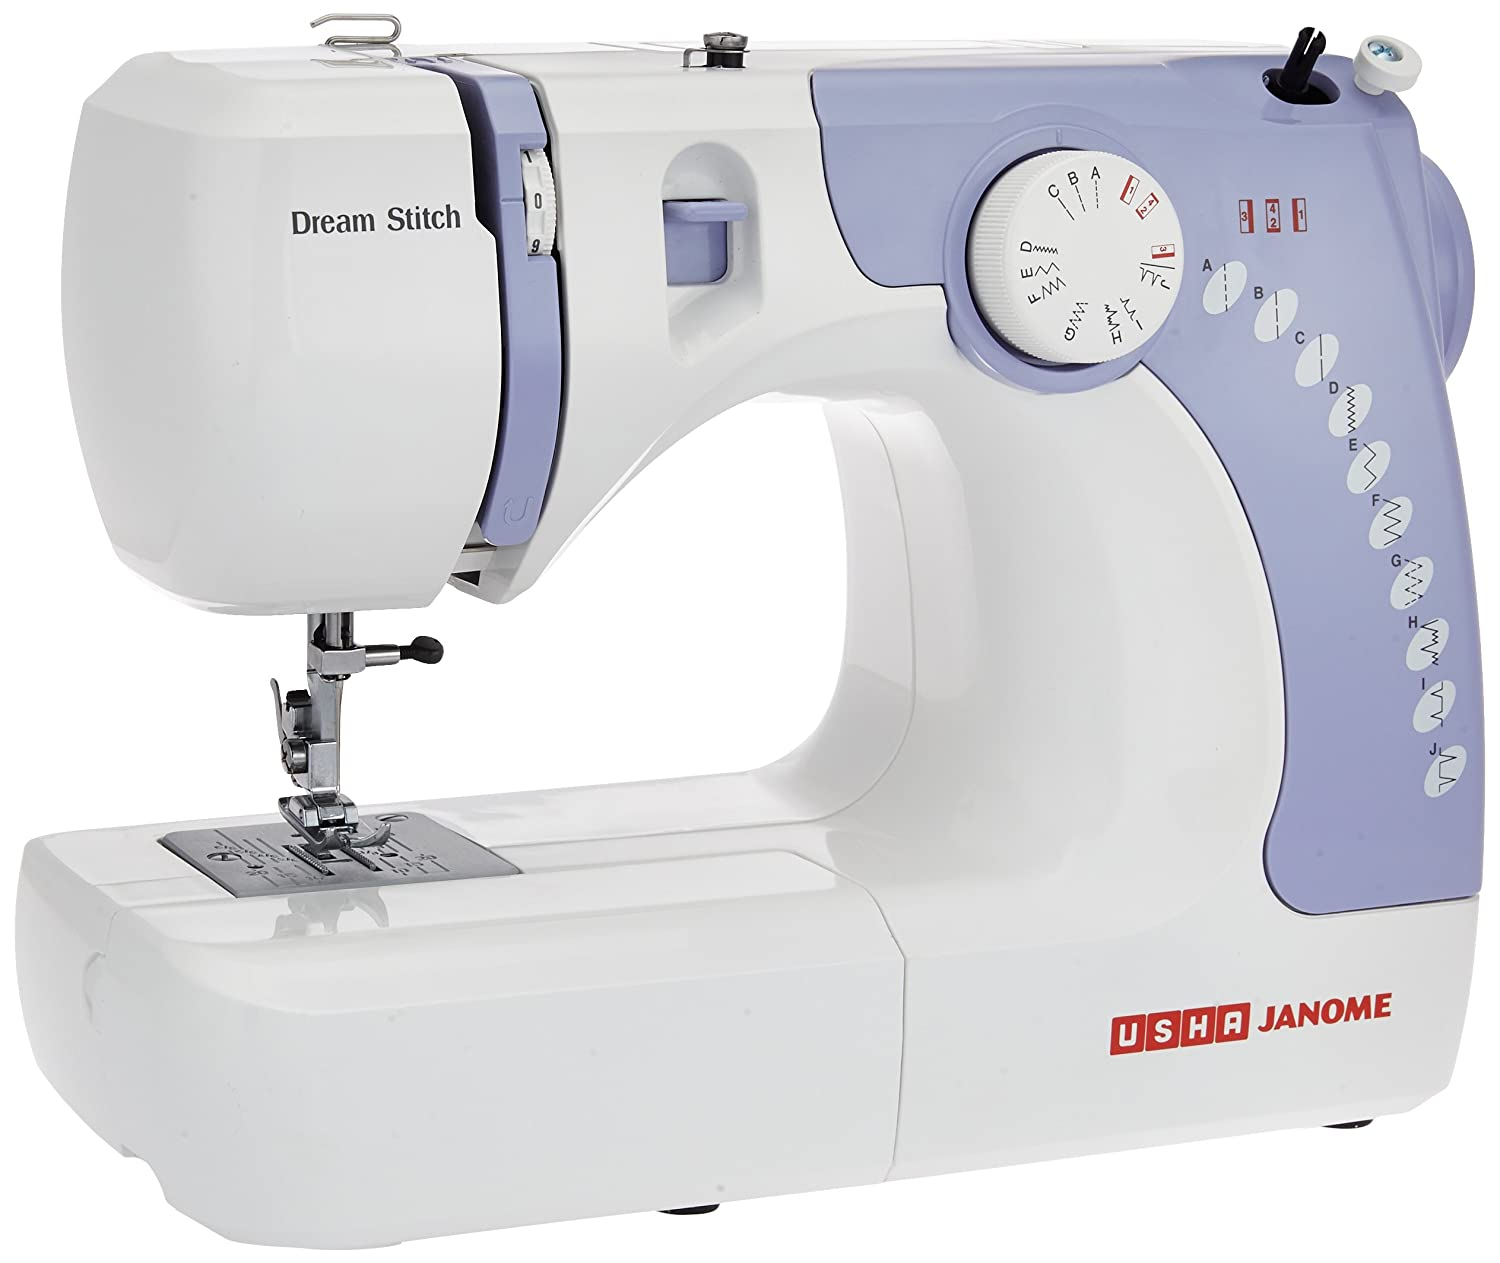 The 7 Best Sewing Machines for Home Use in India – Reviews ...